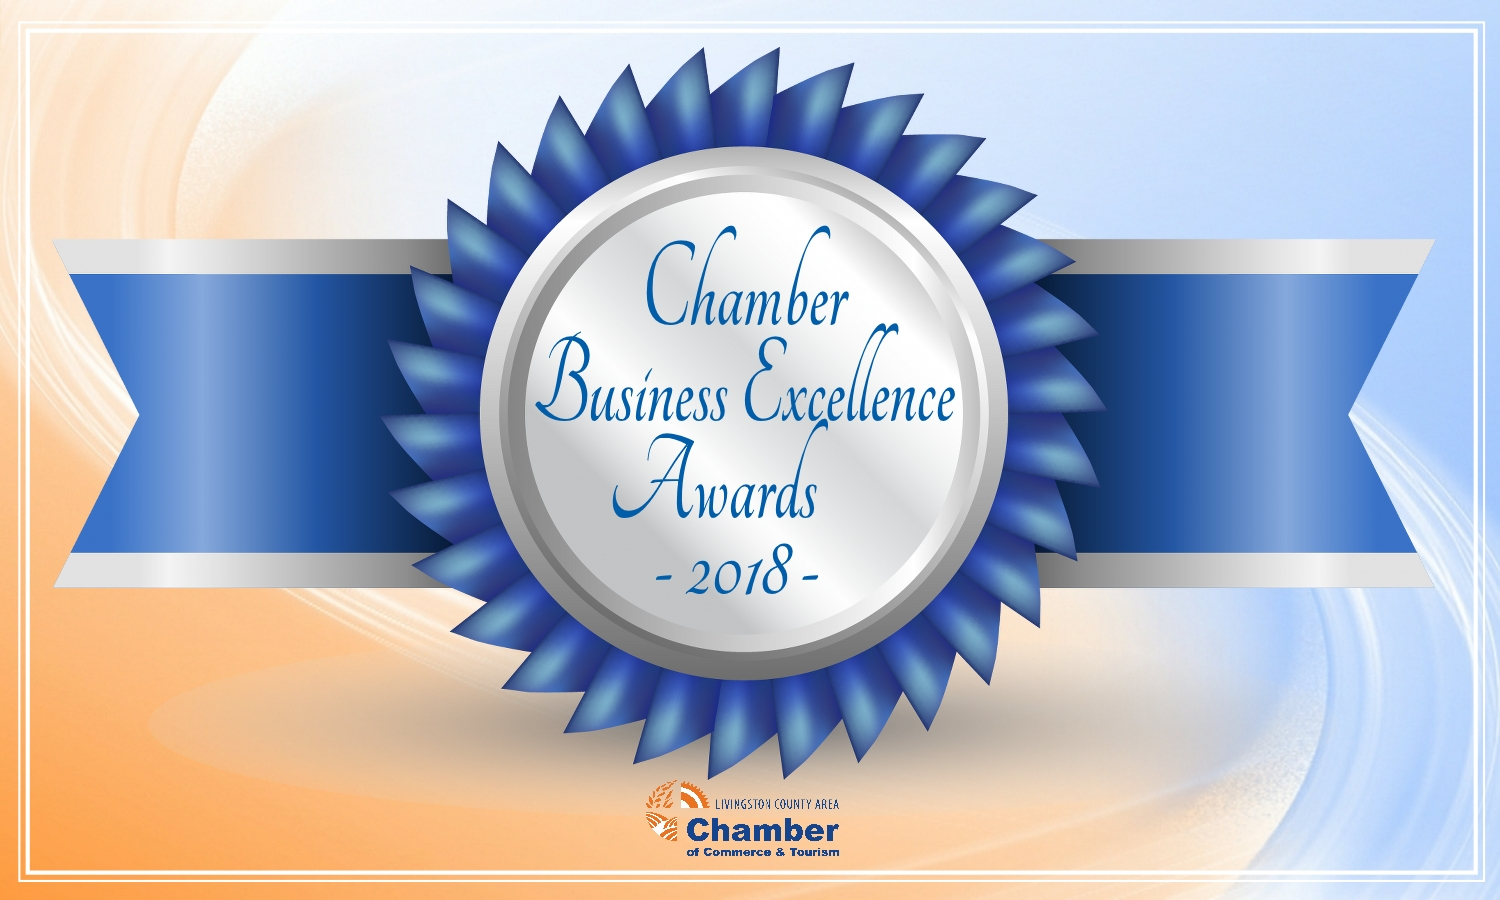 Chamber-Business-Excellence-Awards-2018---Award-Graphic.-vers-2(1).jpg